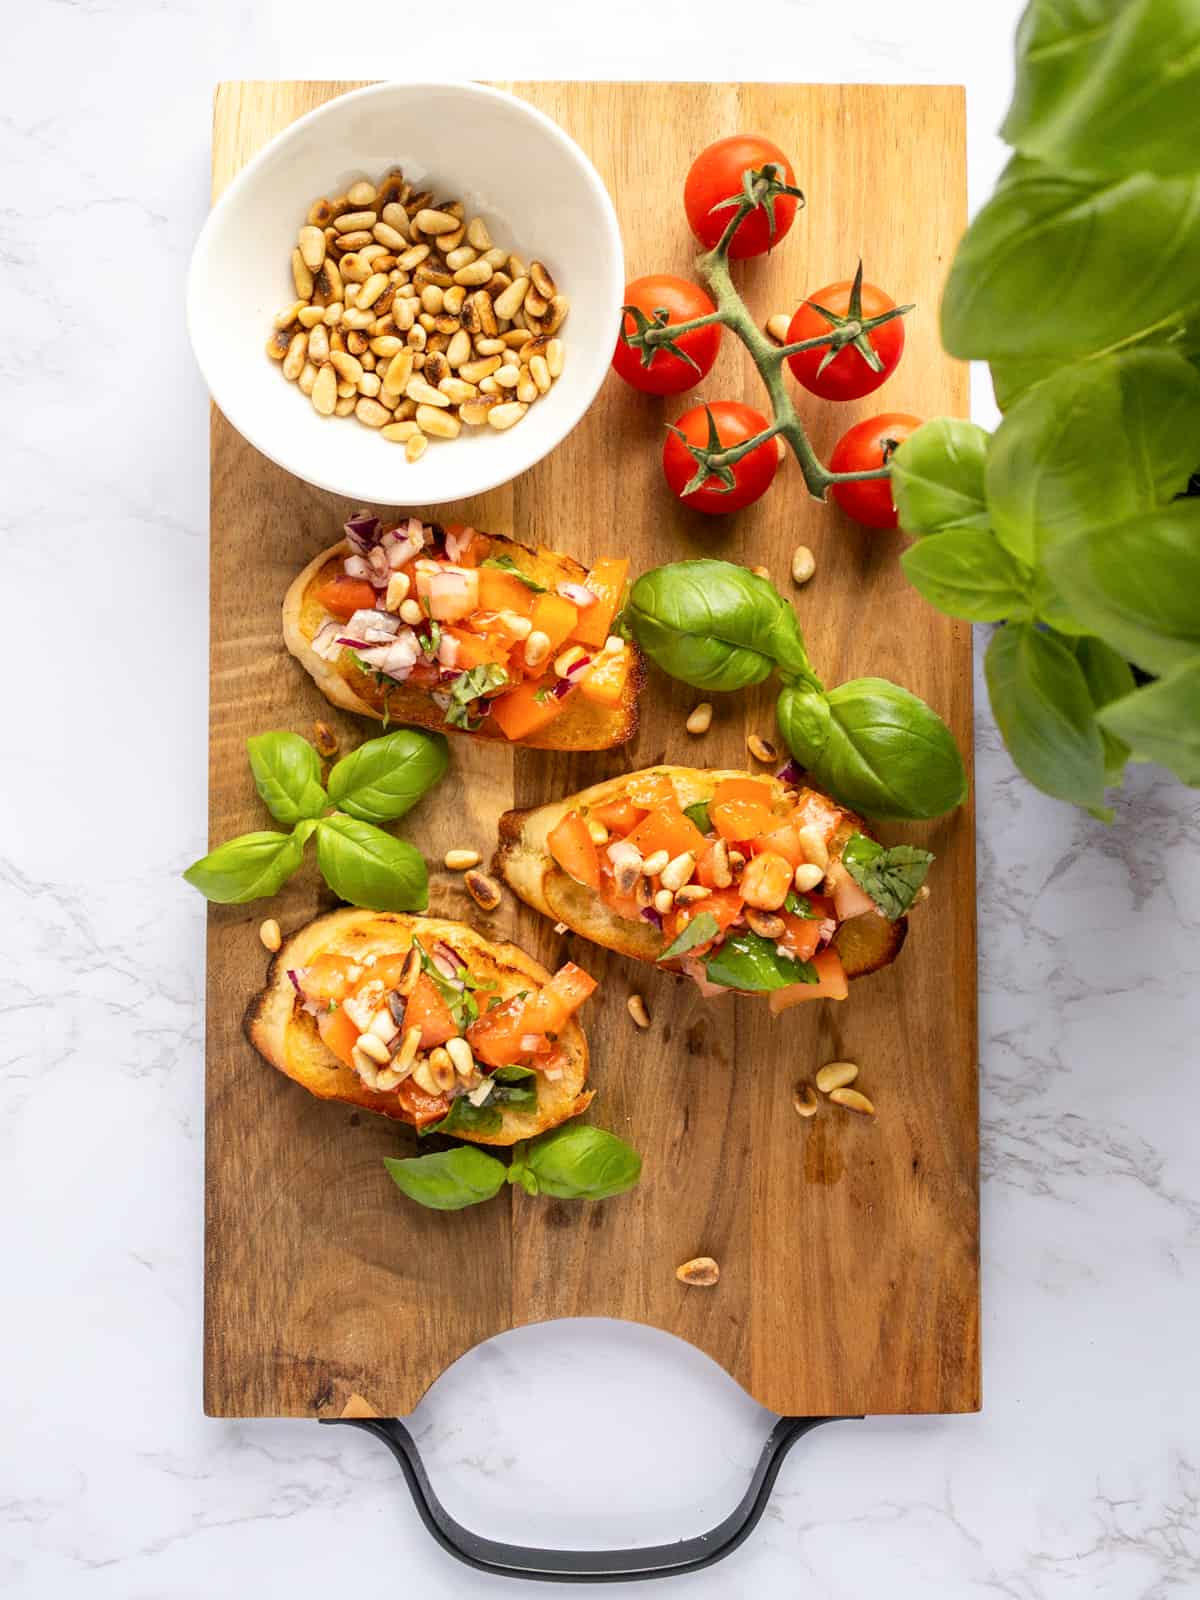 three bruschetta on a wooden cutting board with basil, pine nuts, and tomatoes on the side